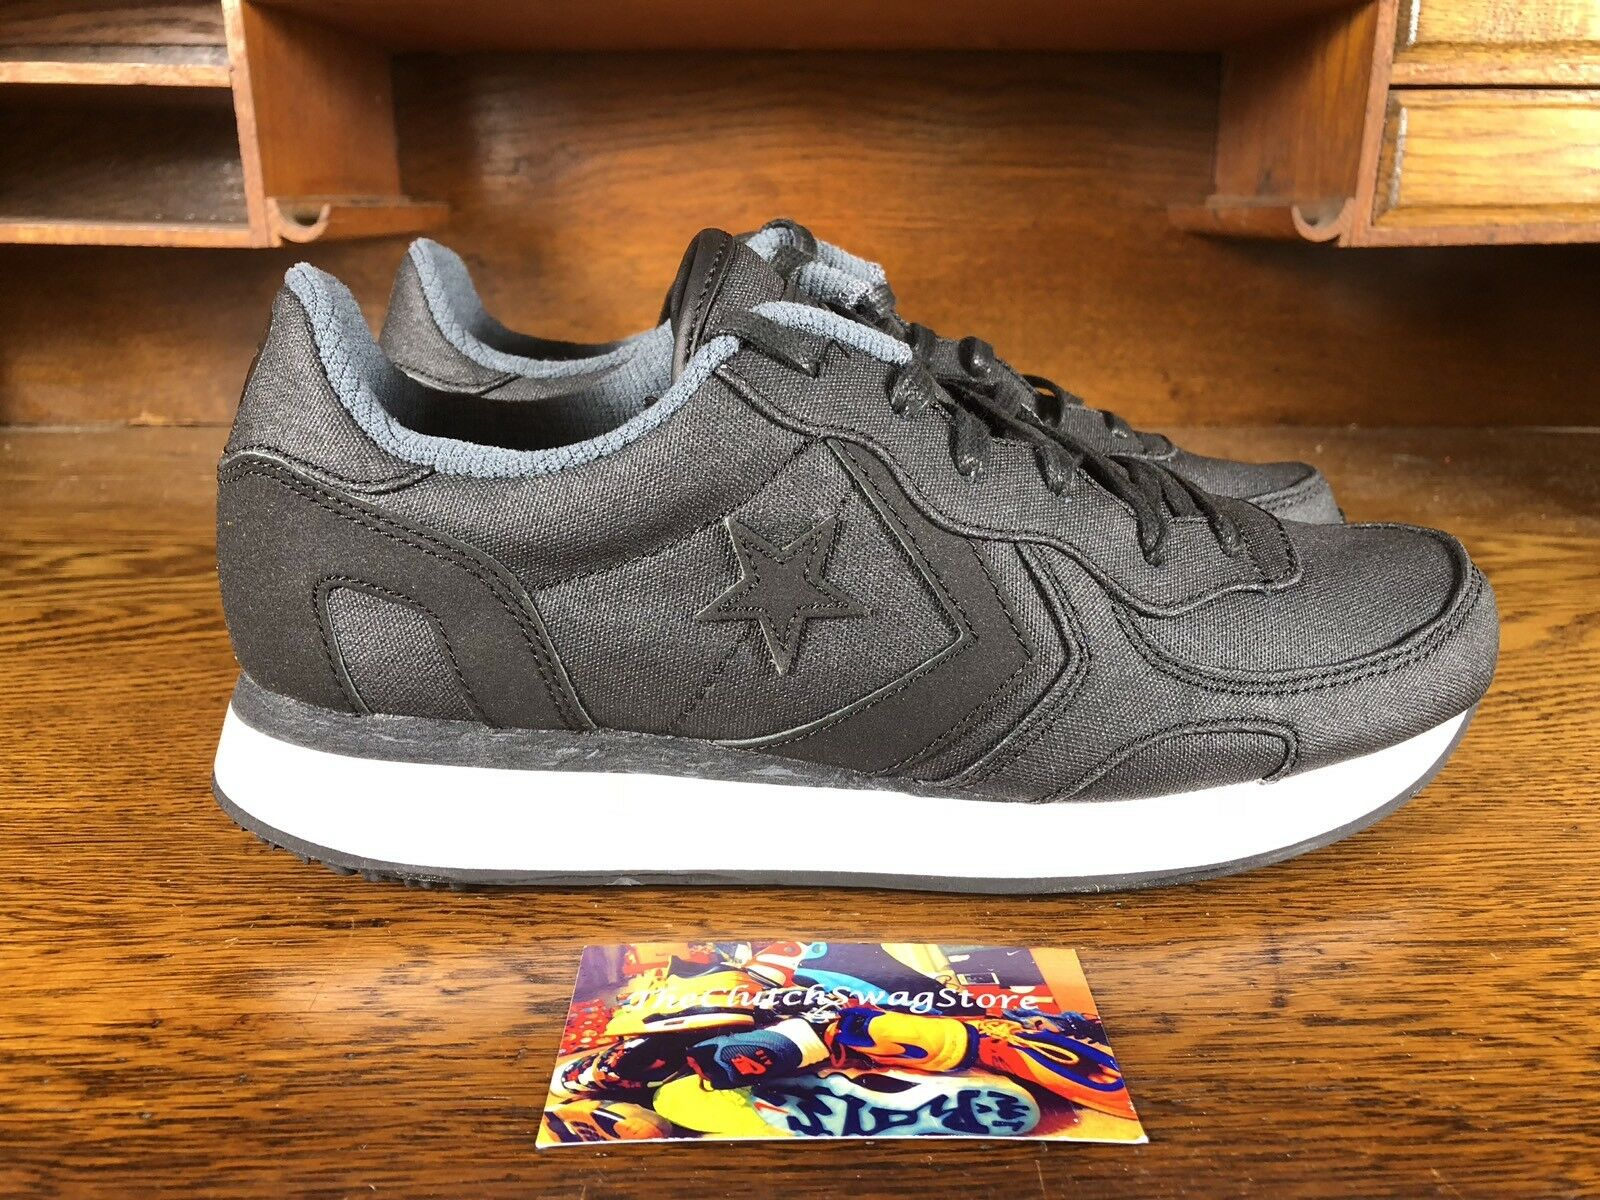 online retailer abfea fbe1b Converse Auckland Racer Ox Mens Running shoes Black Grey White 144556C NEW  Sz 8 onubyg2044-Men s Trainers